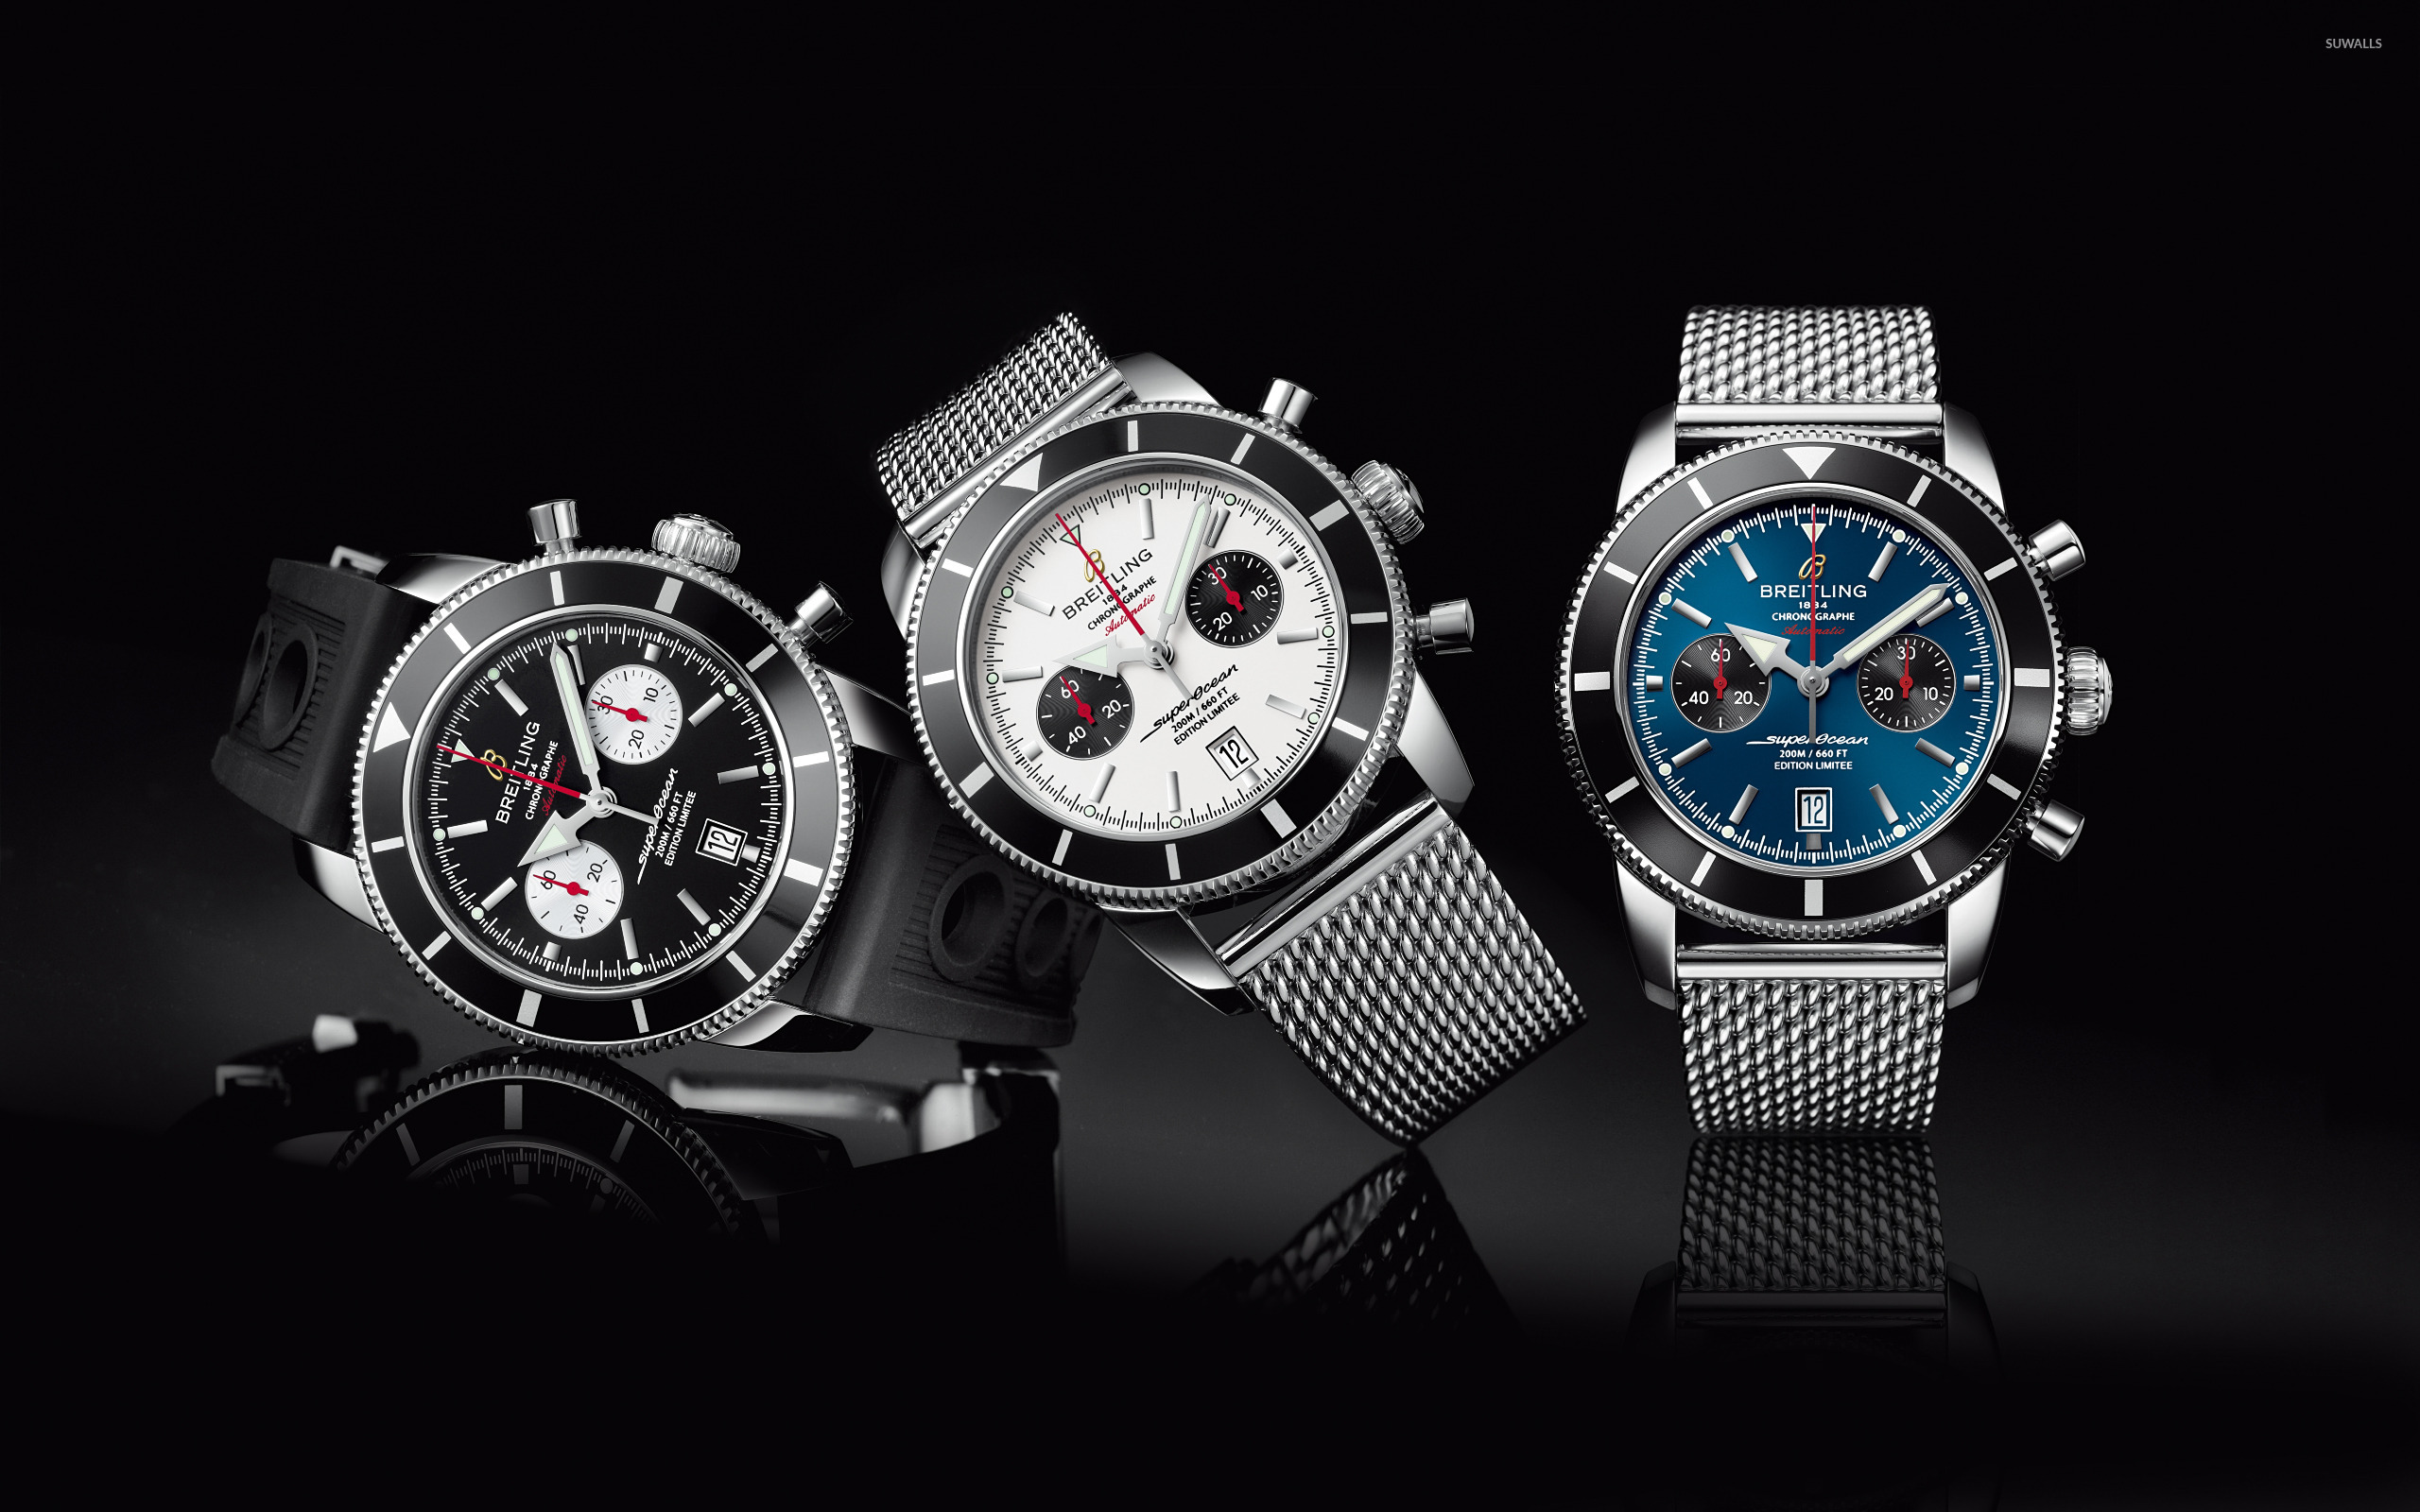 Breitling Watches Wallpaper Photography Wallpapers 37343